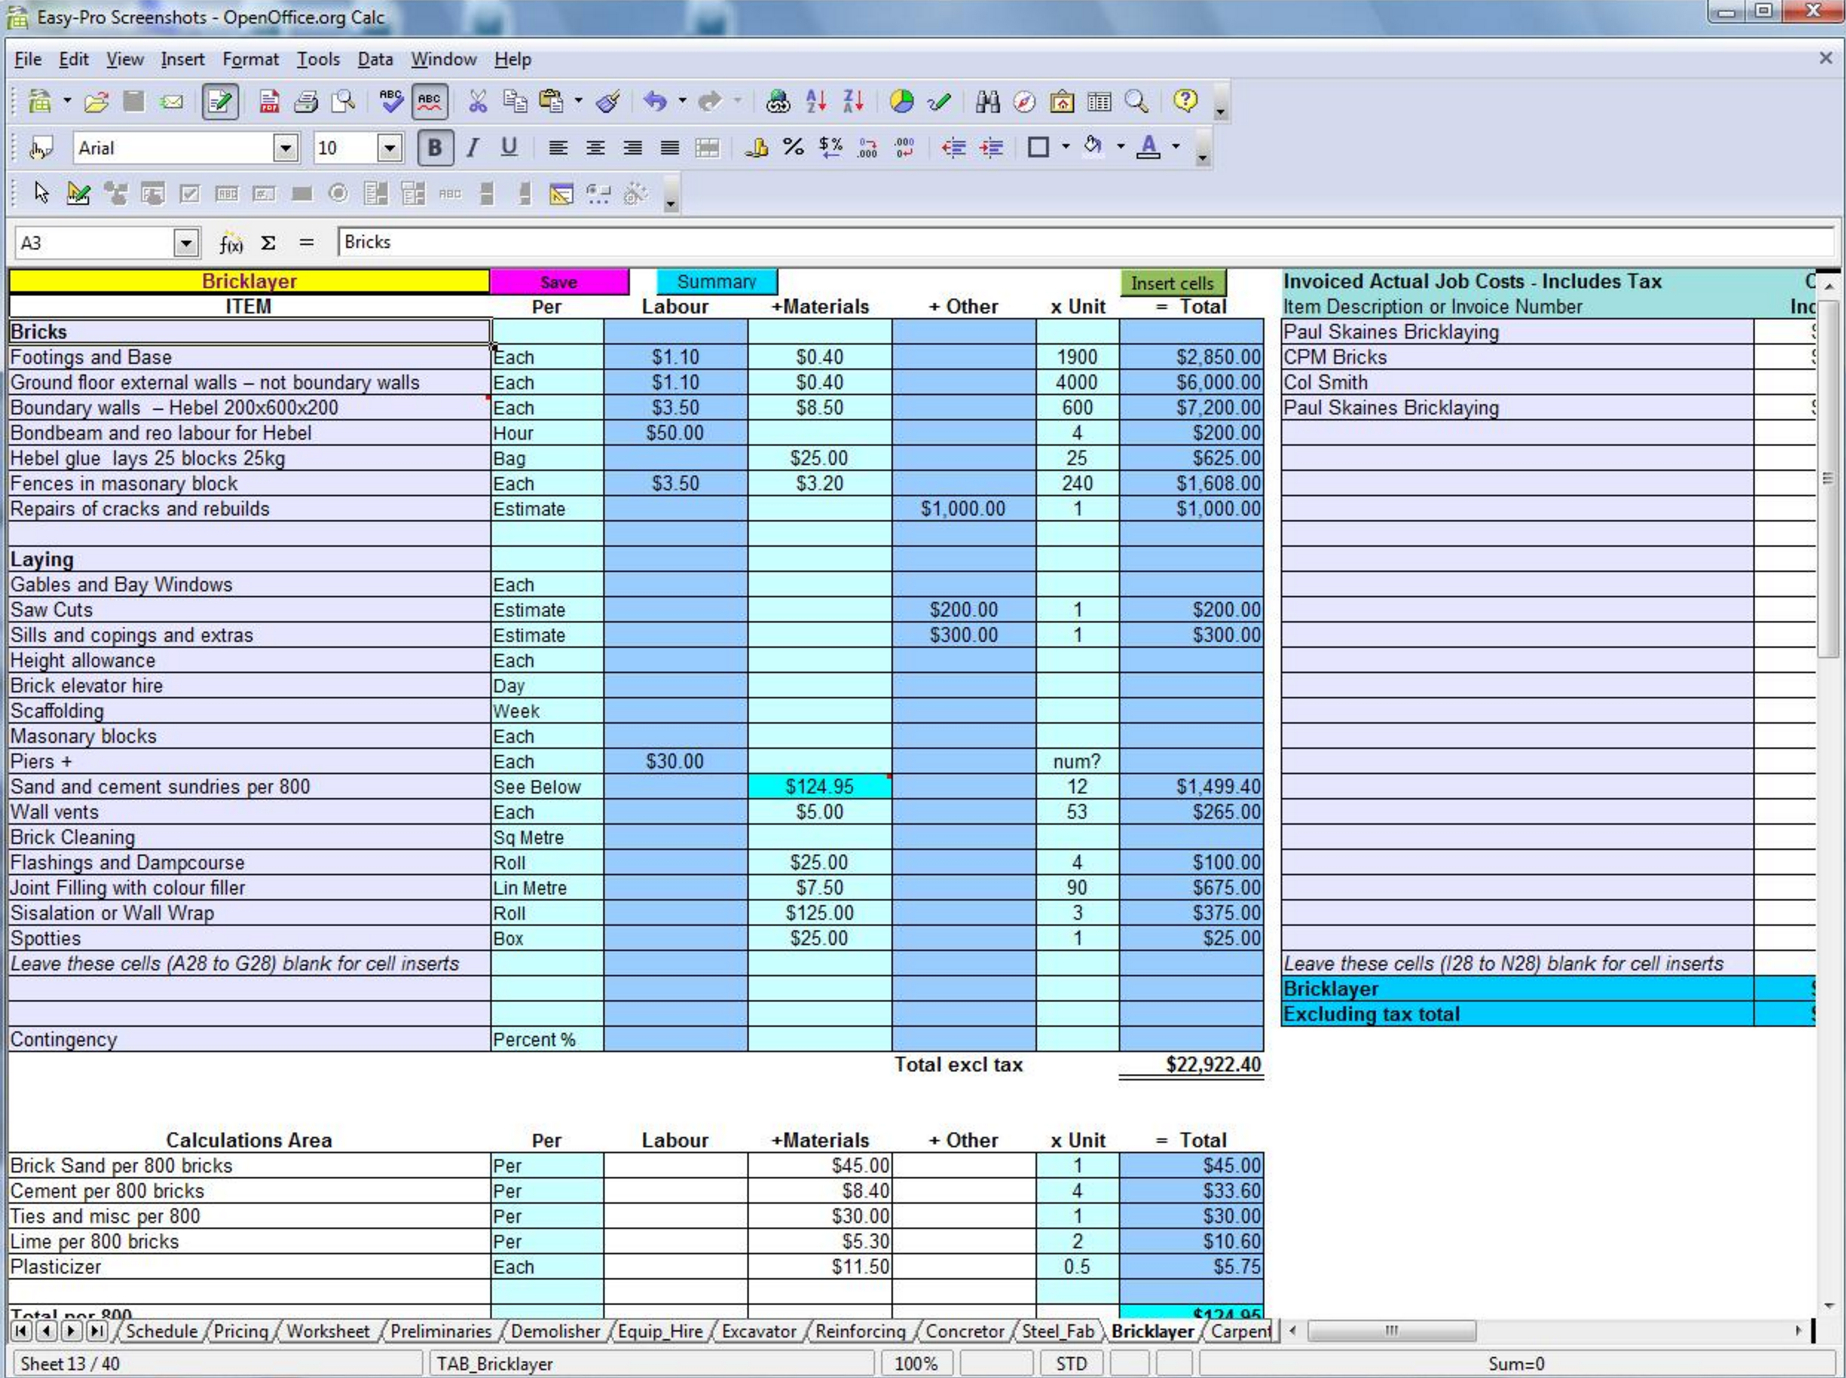 Construction Quantity Tracking Spreadsheet For 5 Free Construction Estimating  Takeoff Products Perfect For Smbs